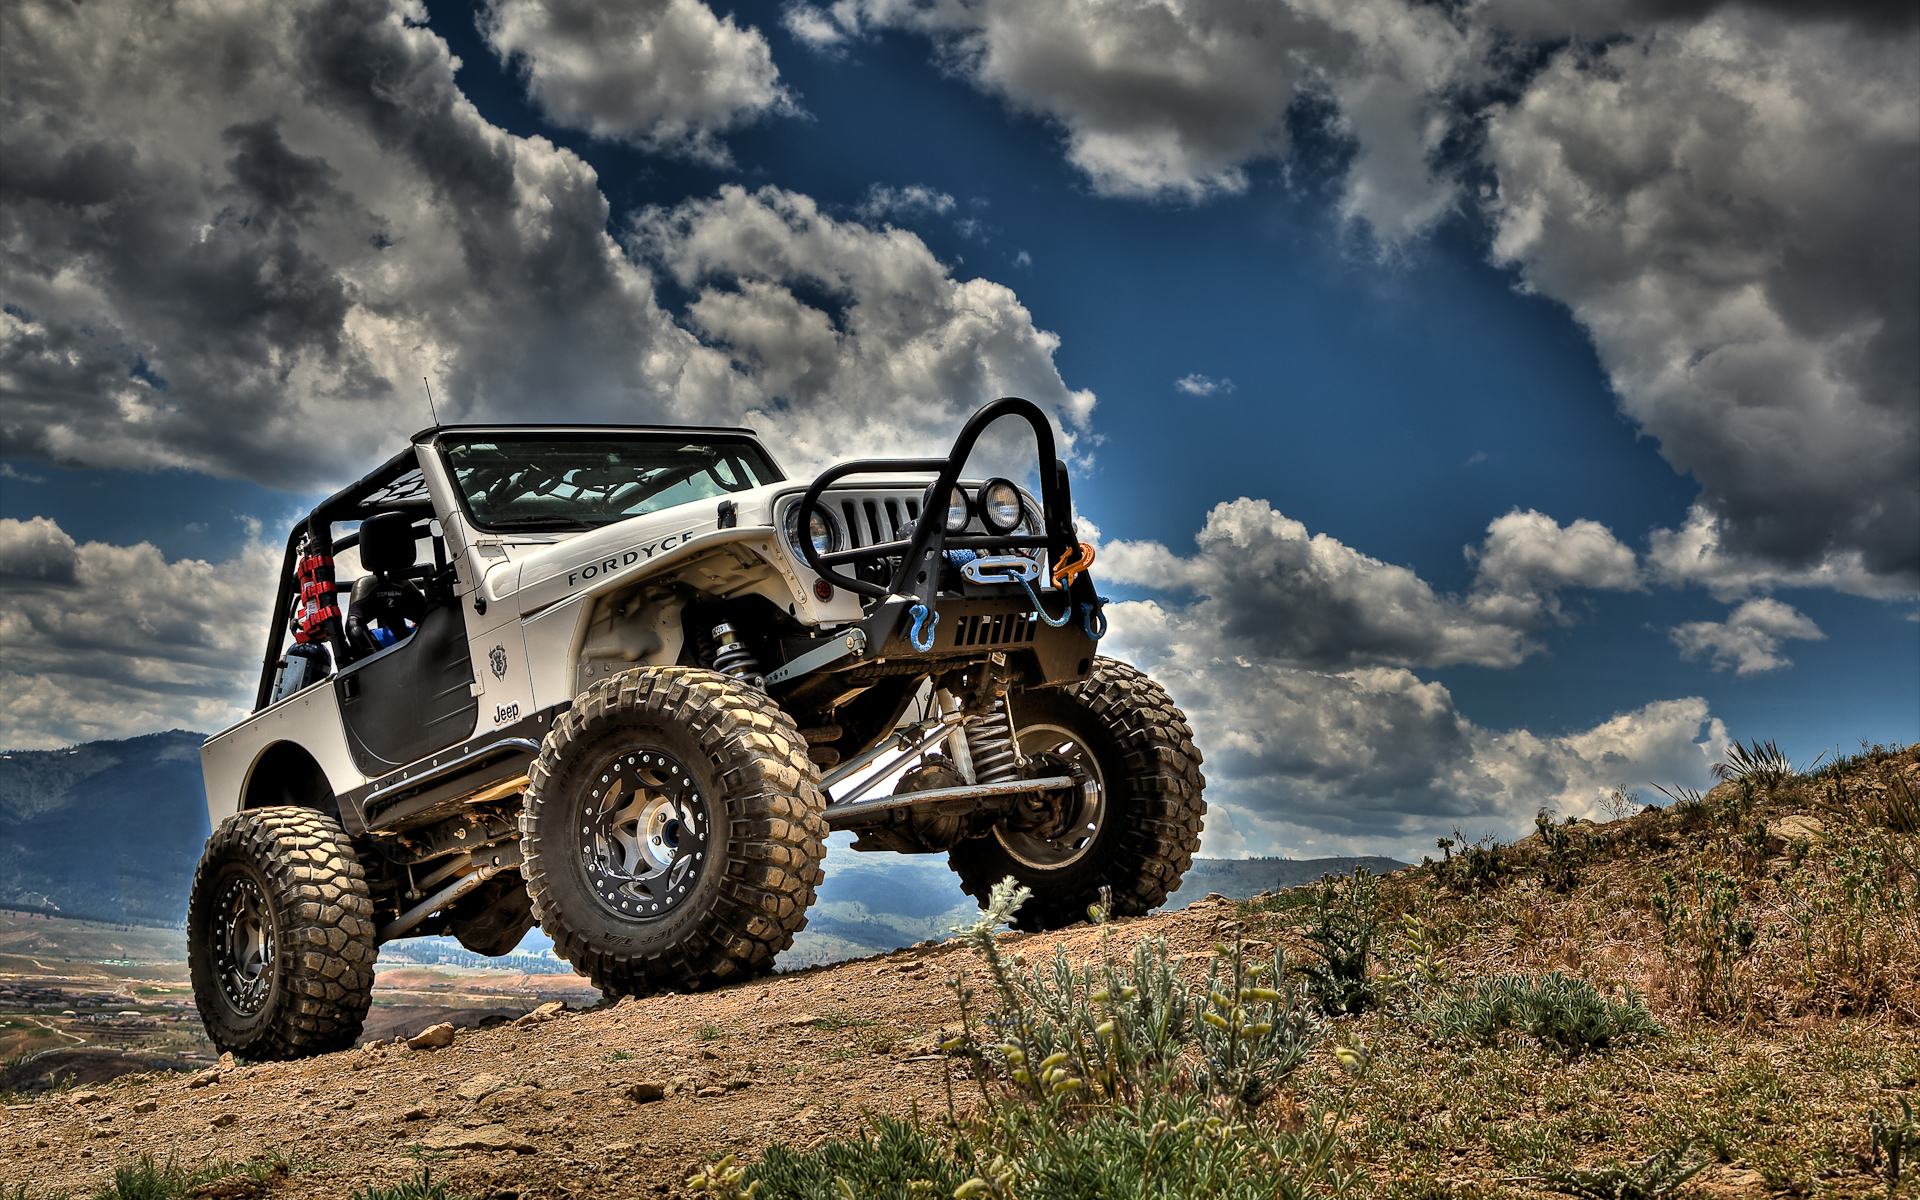 jeep wrangler off road wallpaper cool car wallpapers for your Car 1920x1200